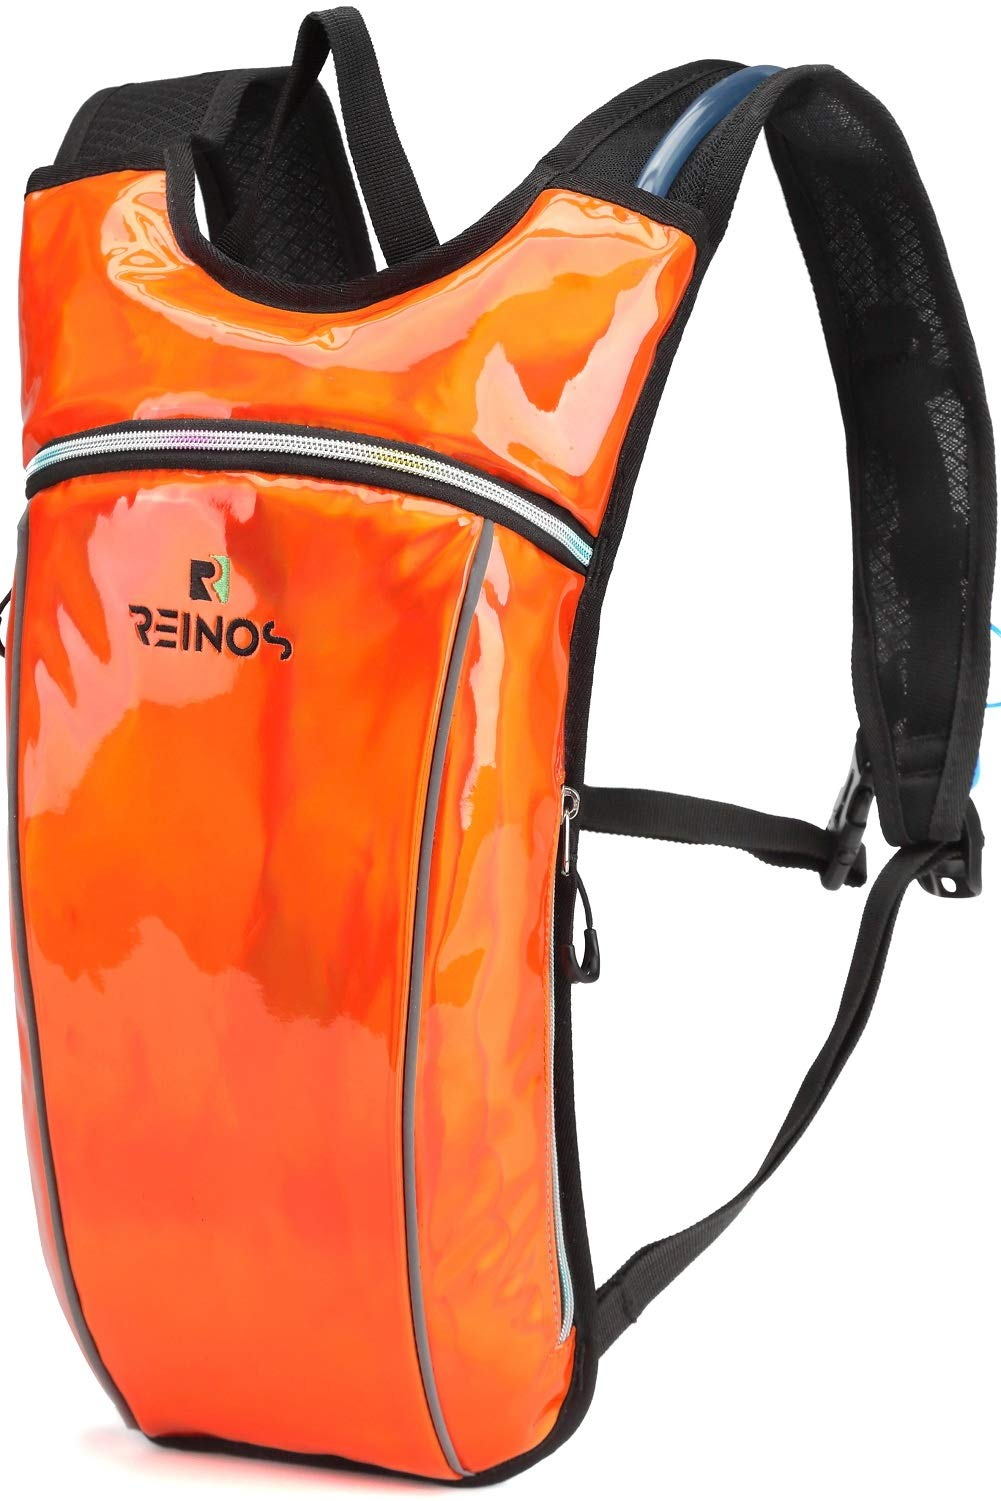 REINOS Hydration Backpack - Light Water Pack - 2L Water Bladder Included for Running, Hiking, Biking, Festivals, Raves (Solid Orange)